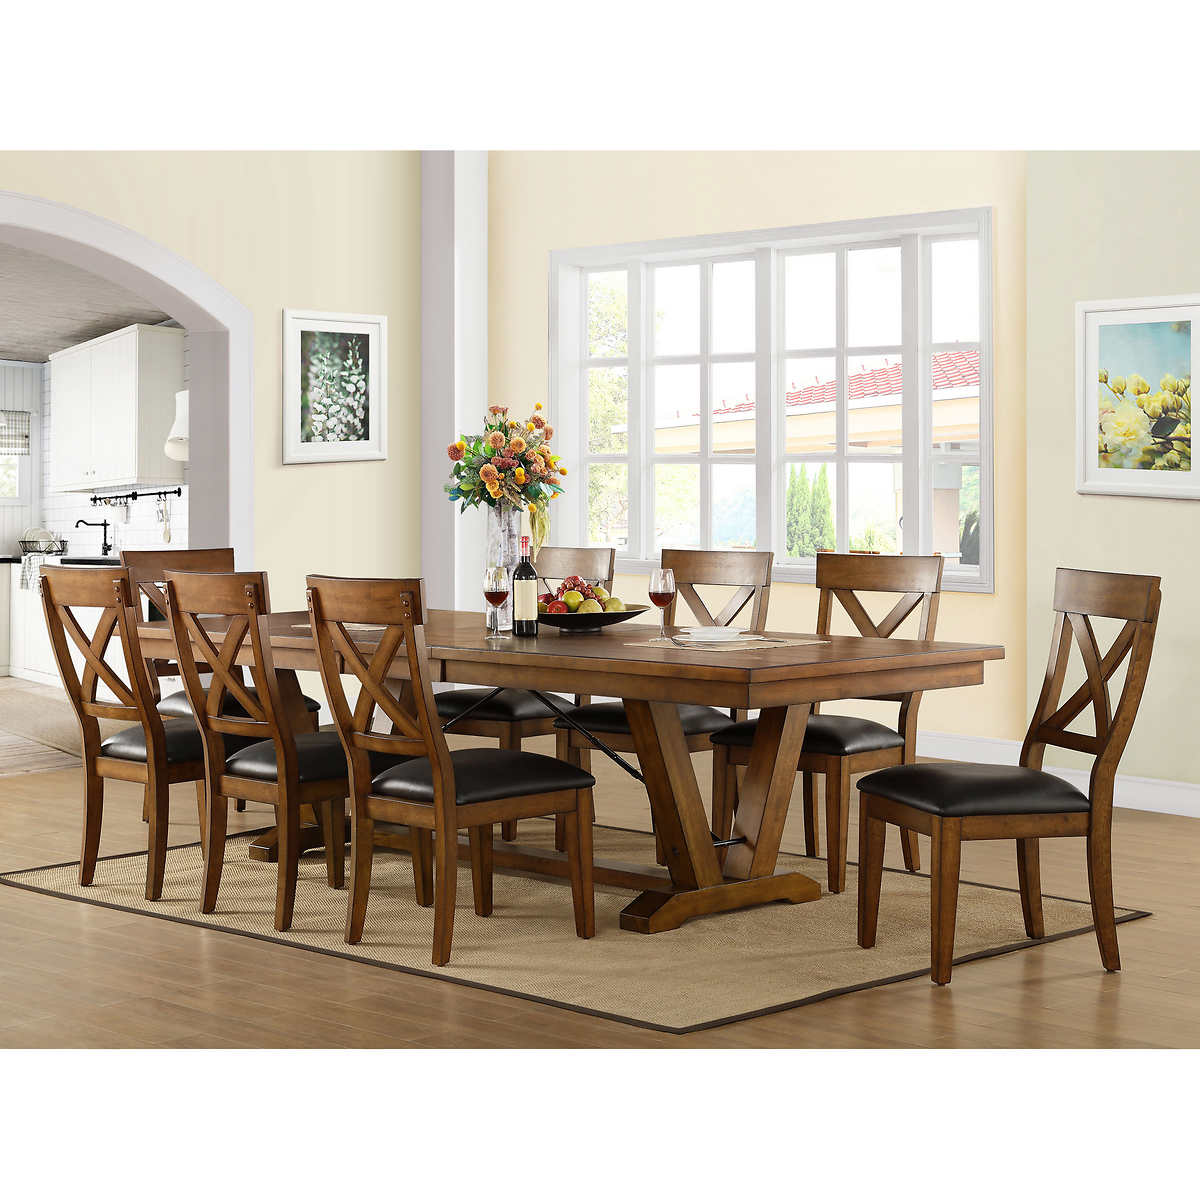 Ymmv In Costco Members Bolton 9 Piece Dining Set For